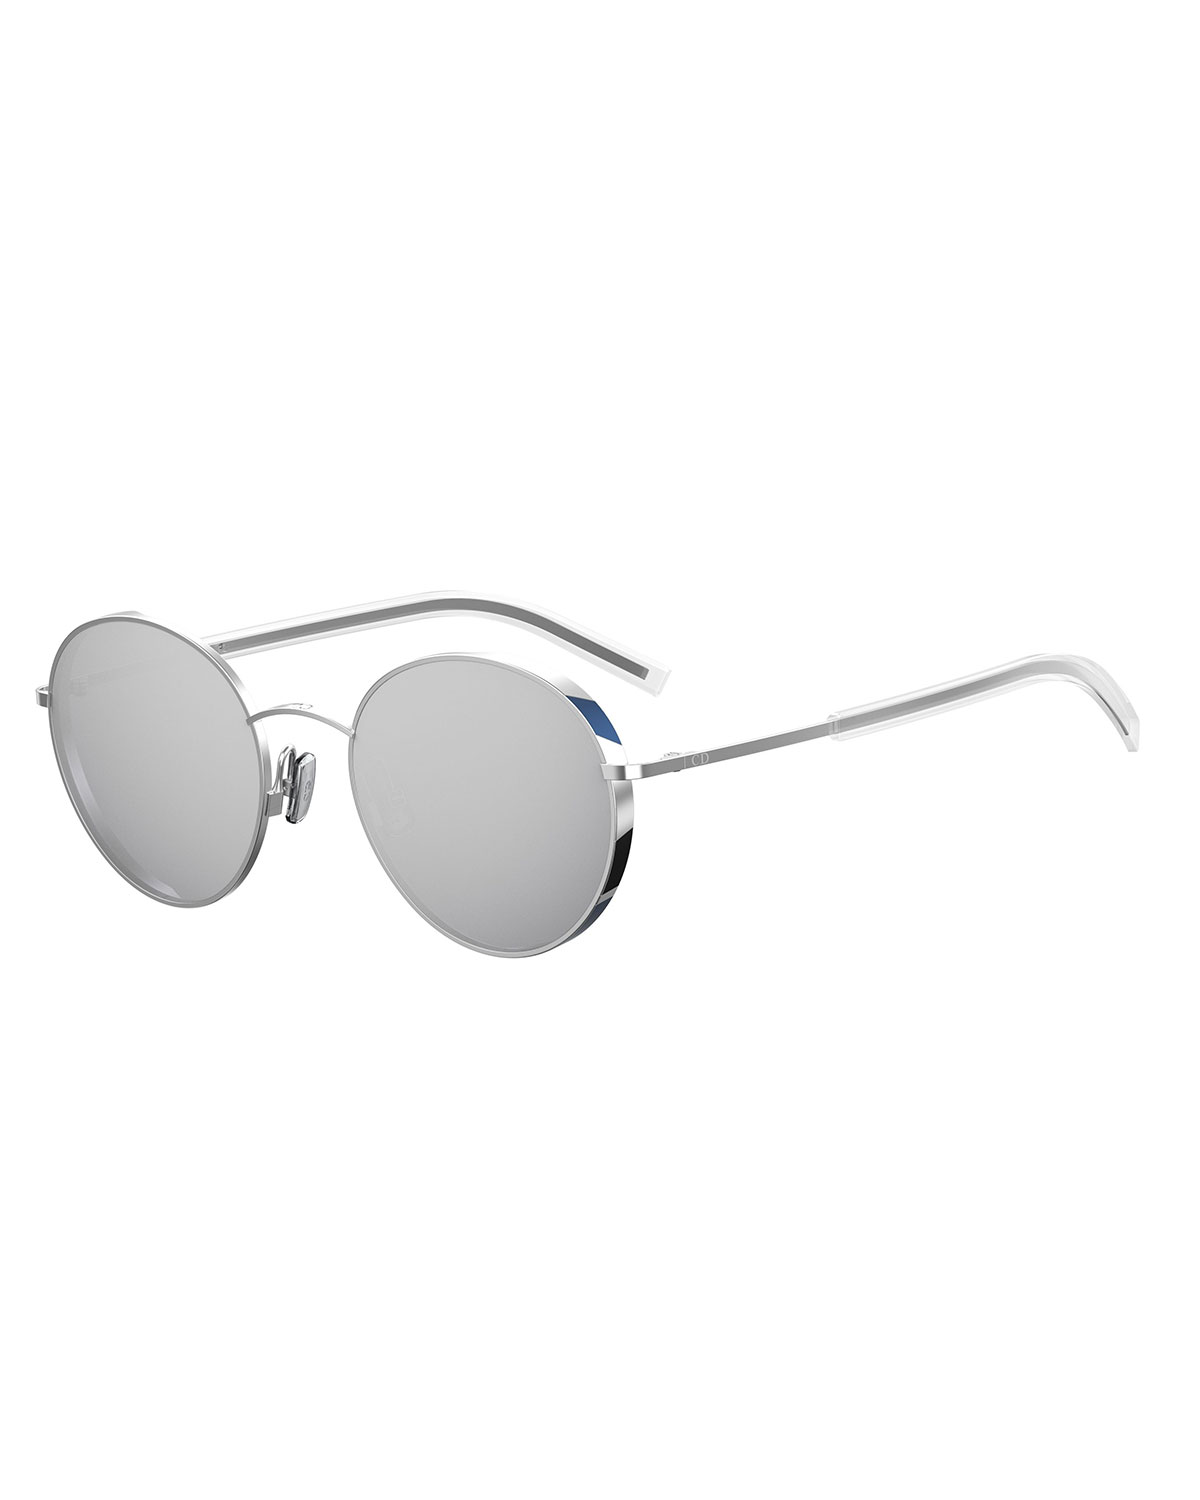 6846172c16 Dior Edgy Round Metal Sunglasses